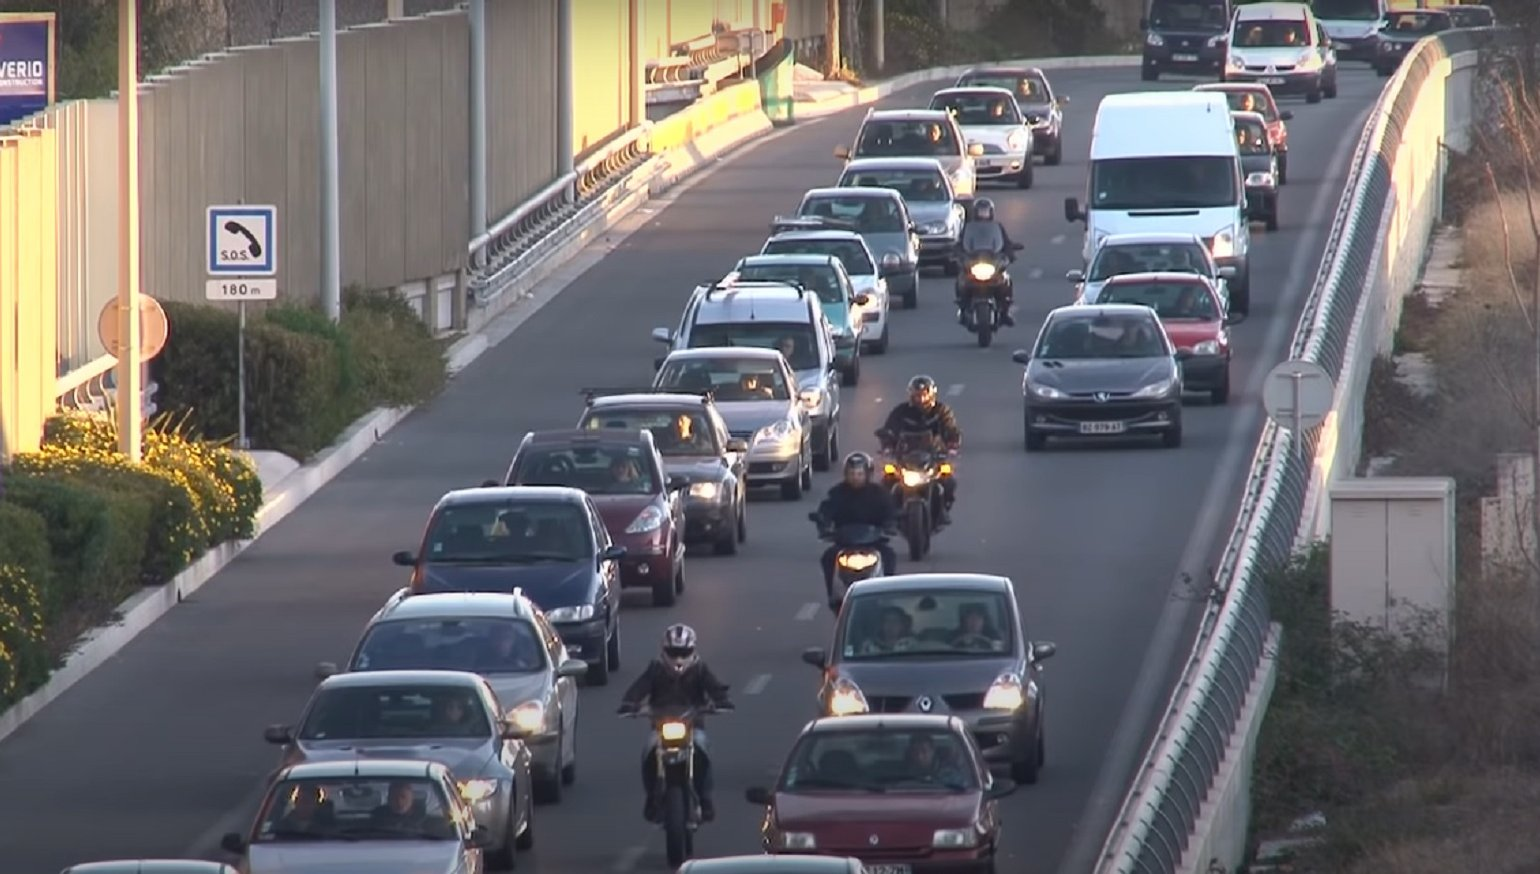 Lane-splitting study in France yields unexpected results, but it's not that simple